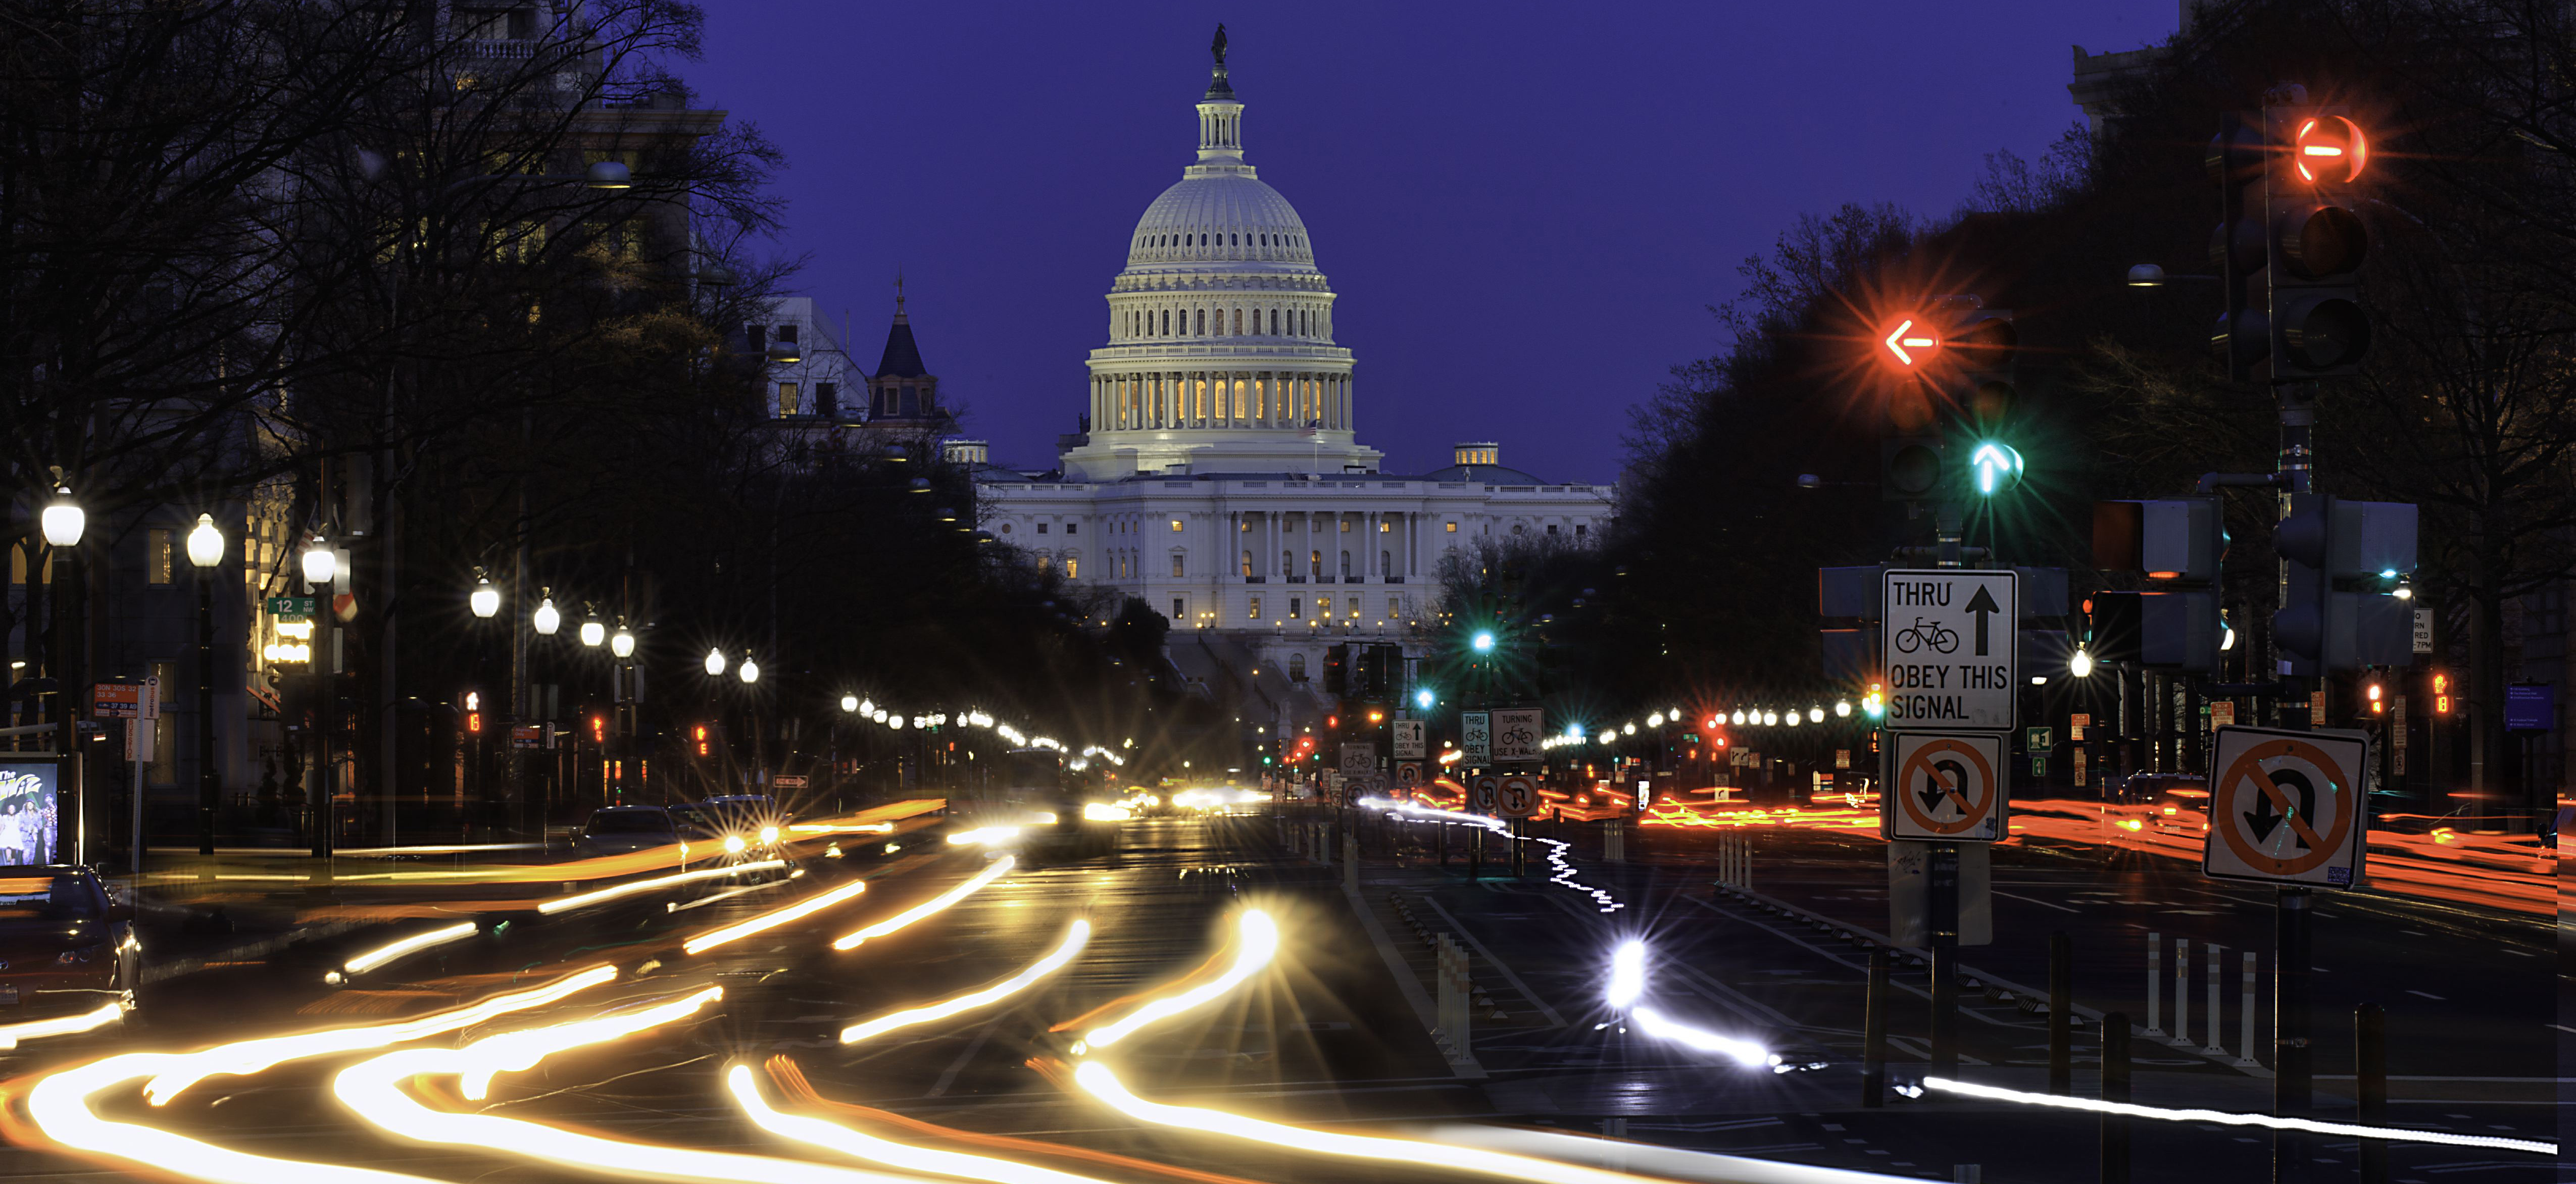 A view of Pennsylvania Ave. headed to the U.S. Capitol in Washington, D.C., during an evening rush hour. (Joe Sohm/Visions of America/UIG via Getty Images)